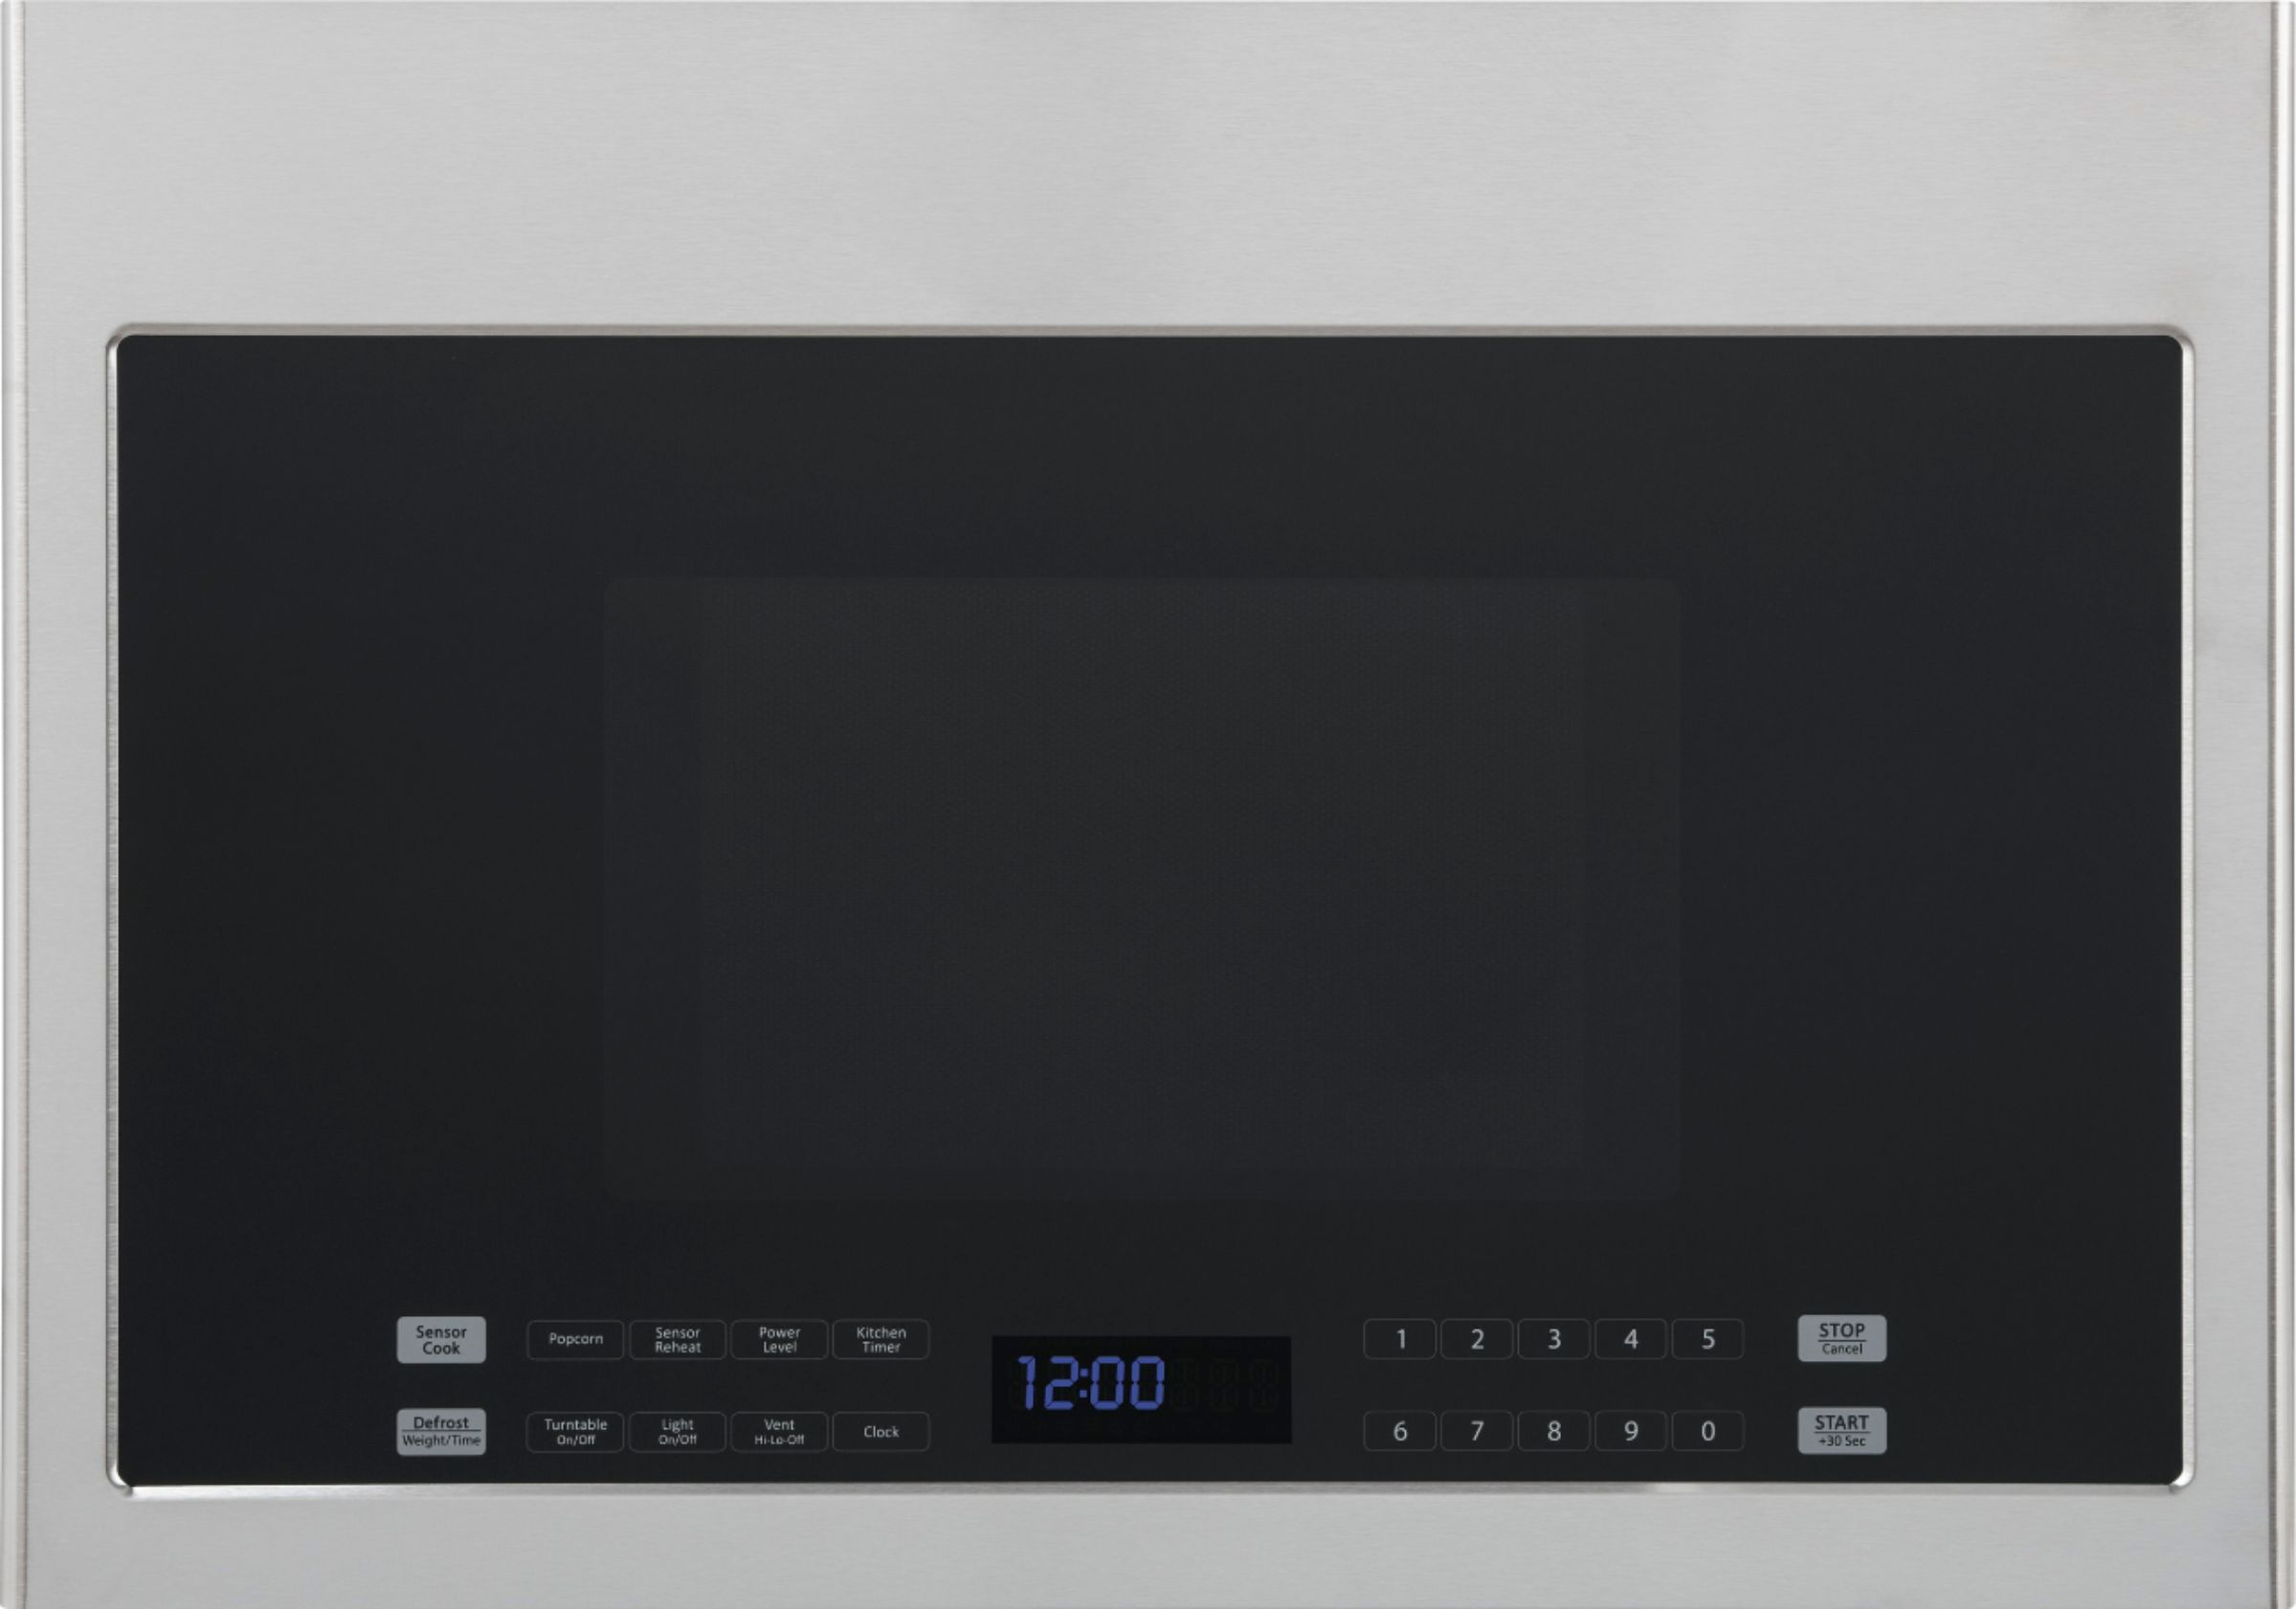 haier 1 4 cu ft over the range microwave with sensor cooking stainless steel